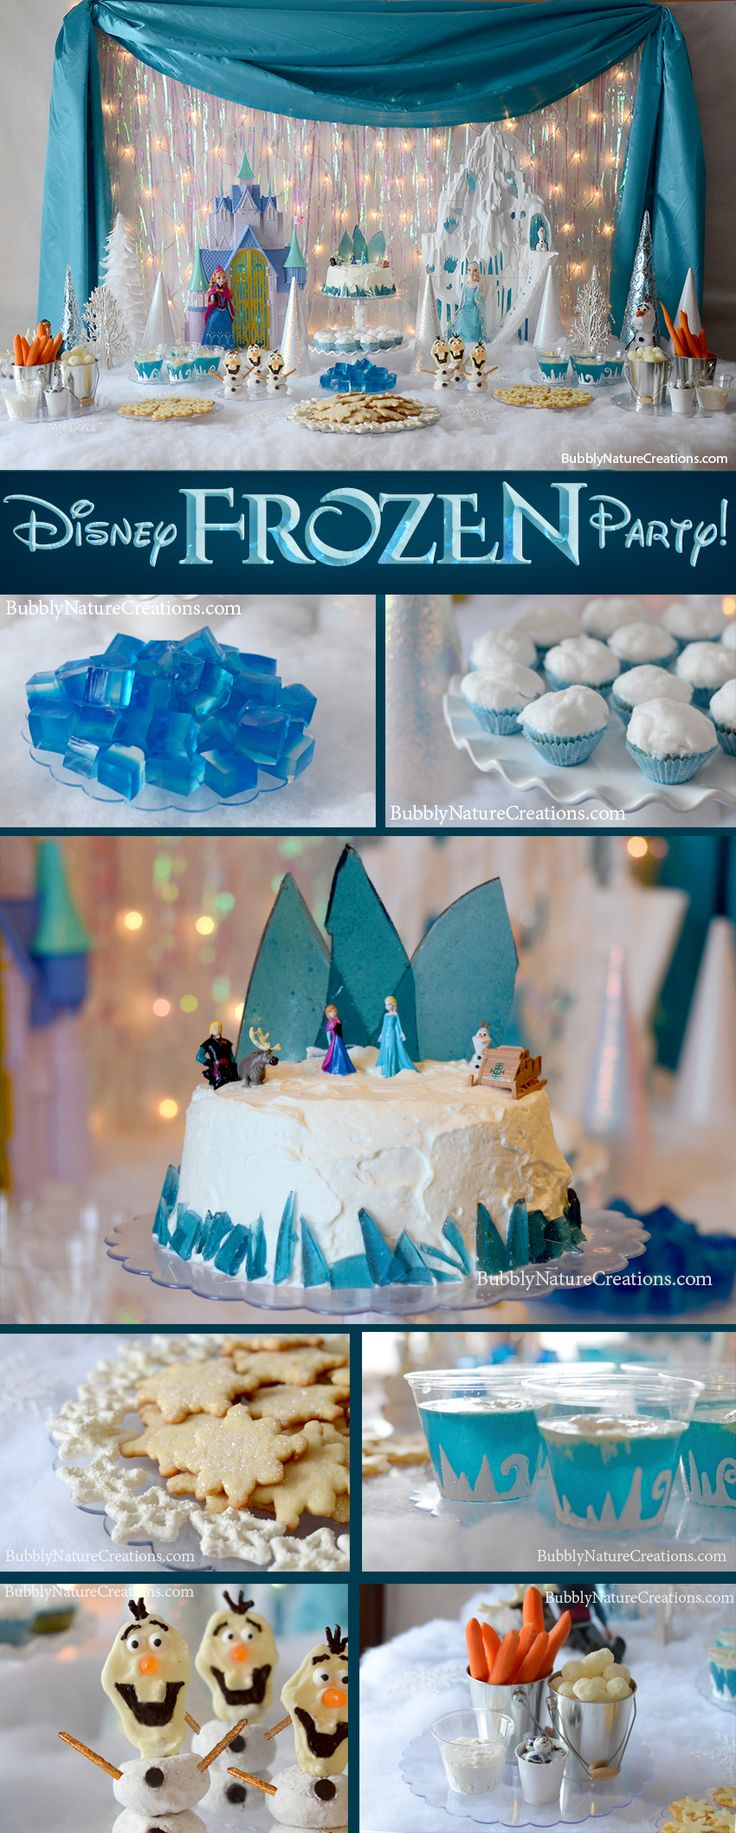 Amazing Disney FROZEN Party with great details & ideas!